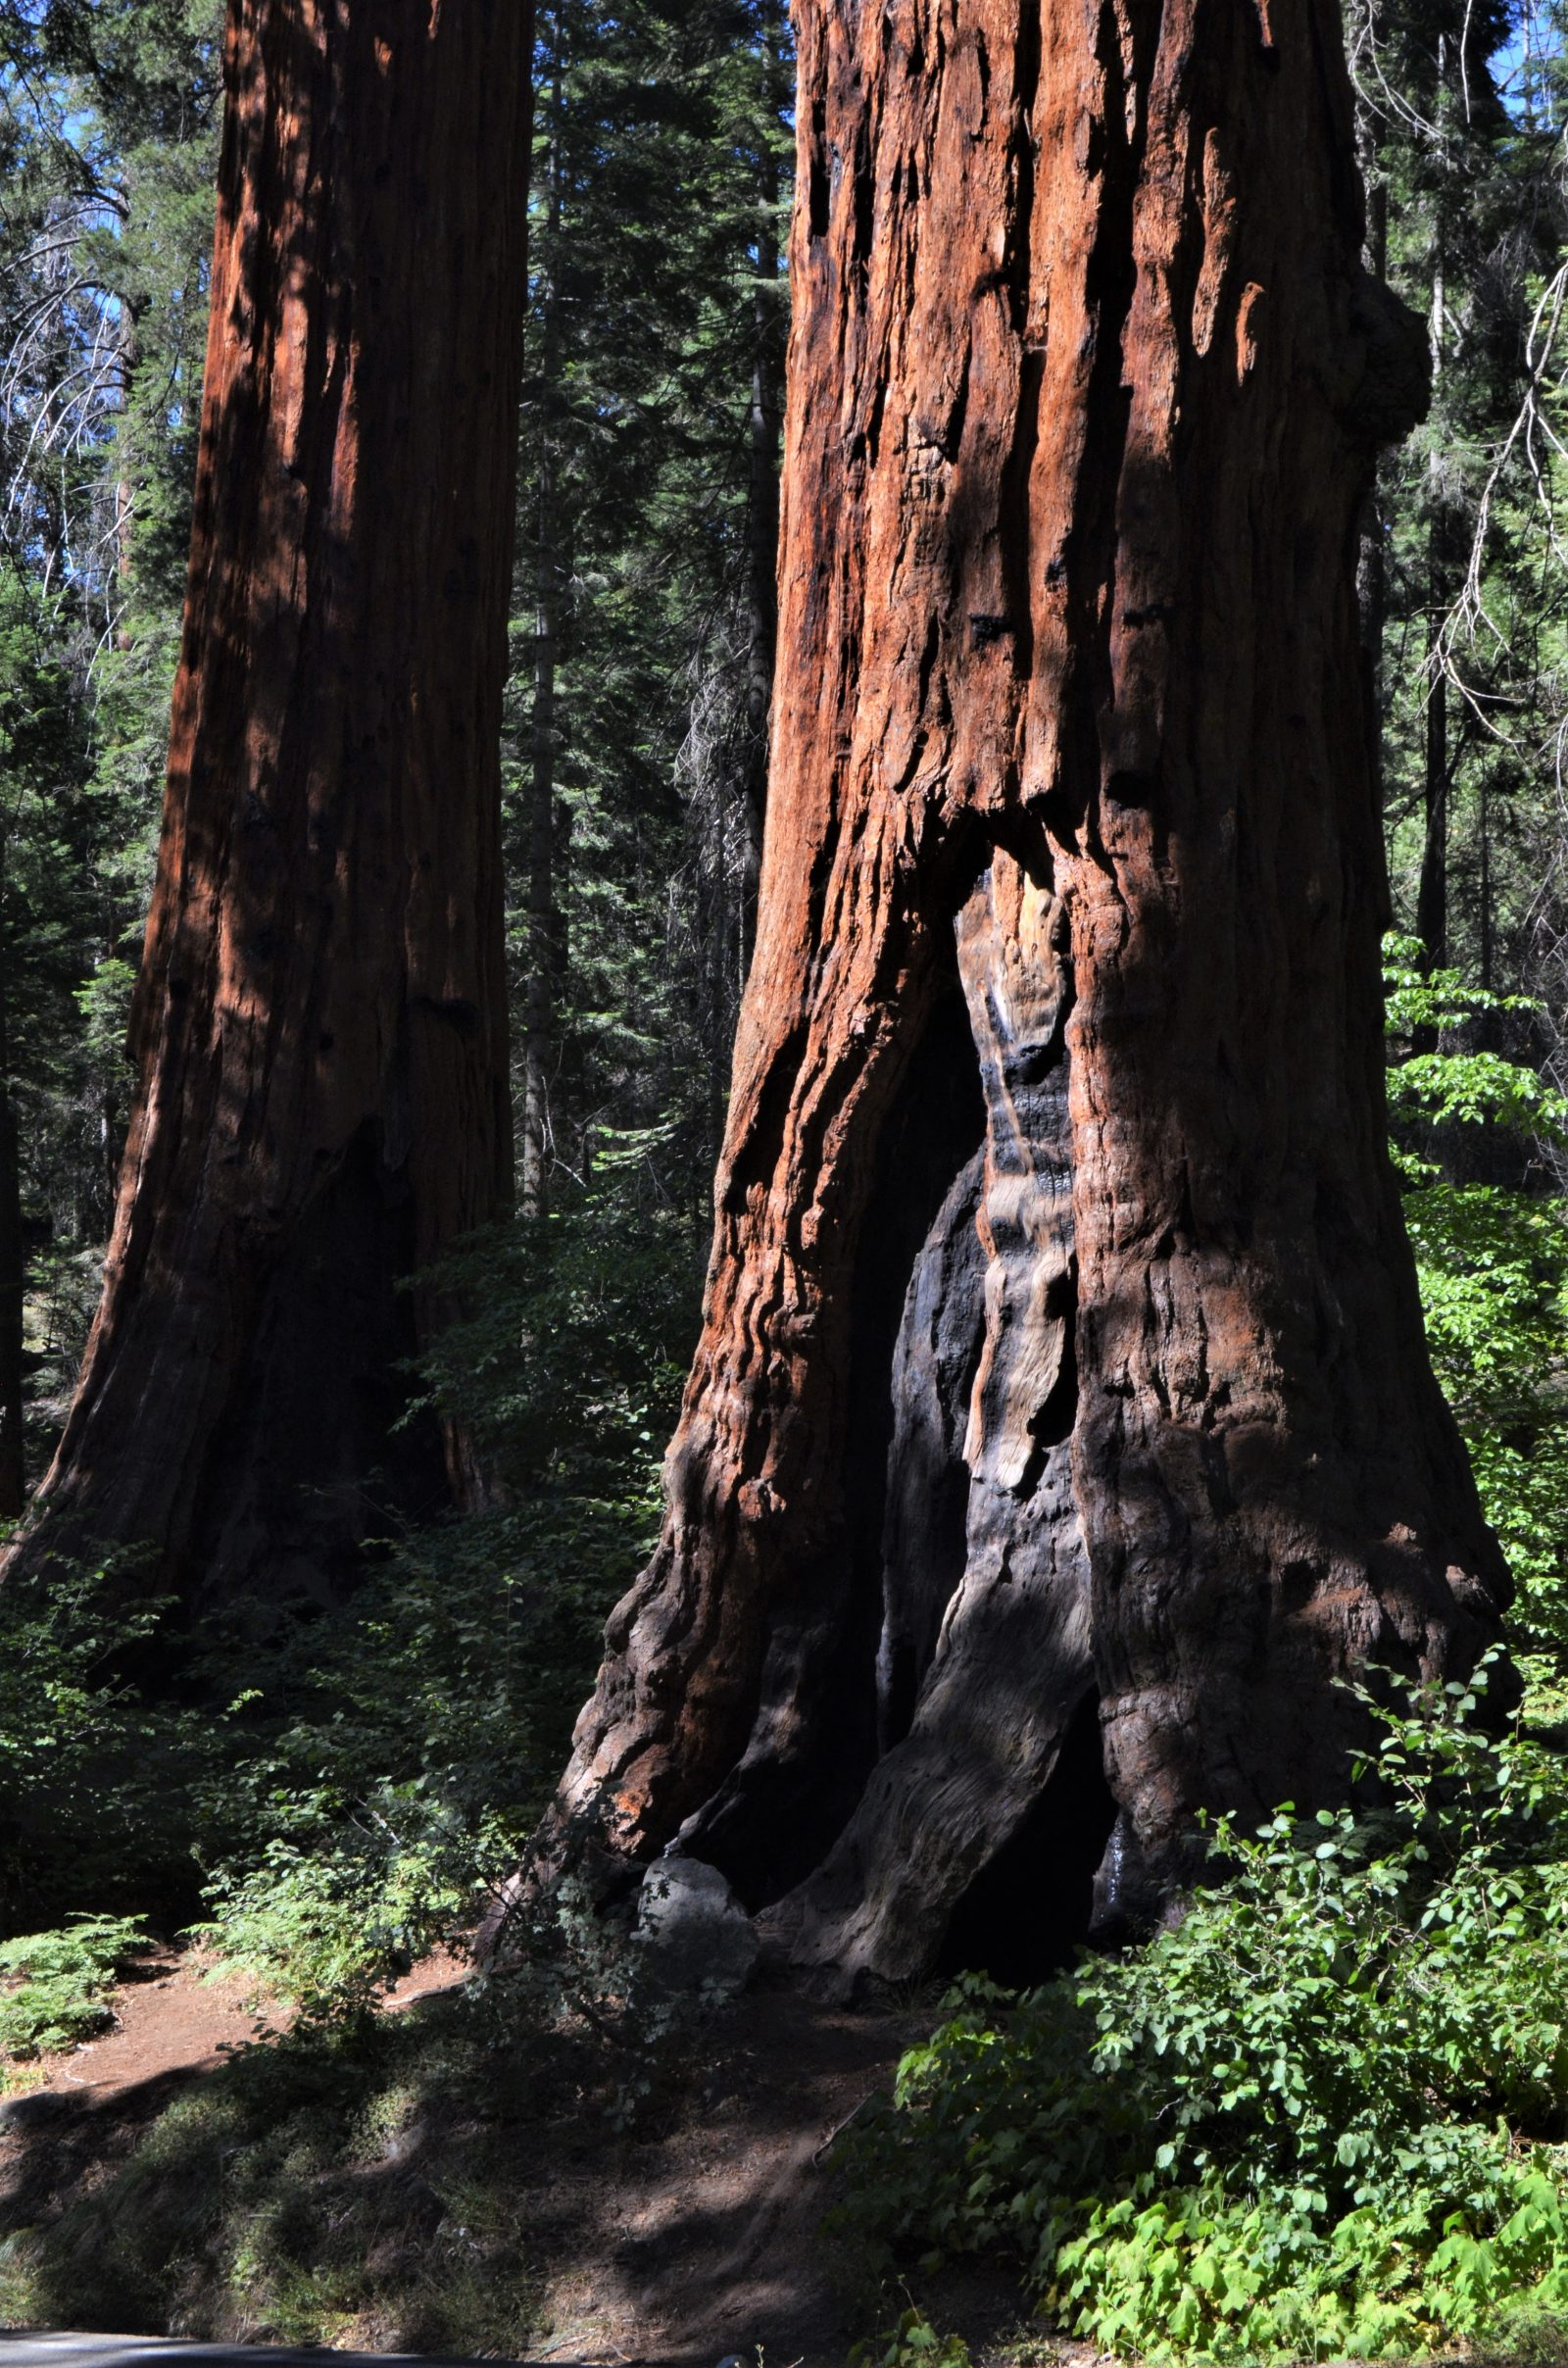 Afternoon Light & Rugged Sequoia Trunk